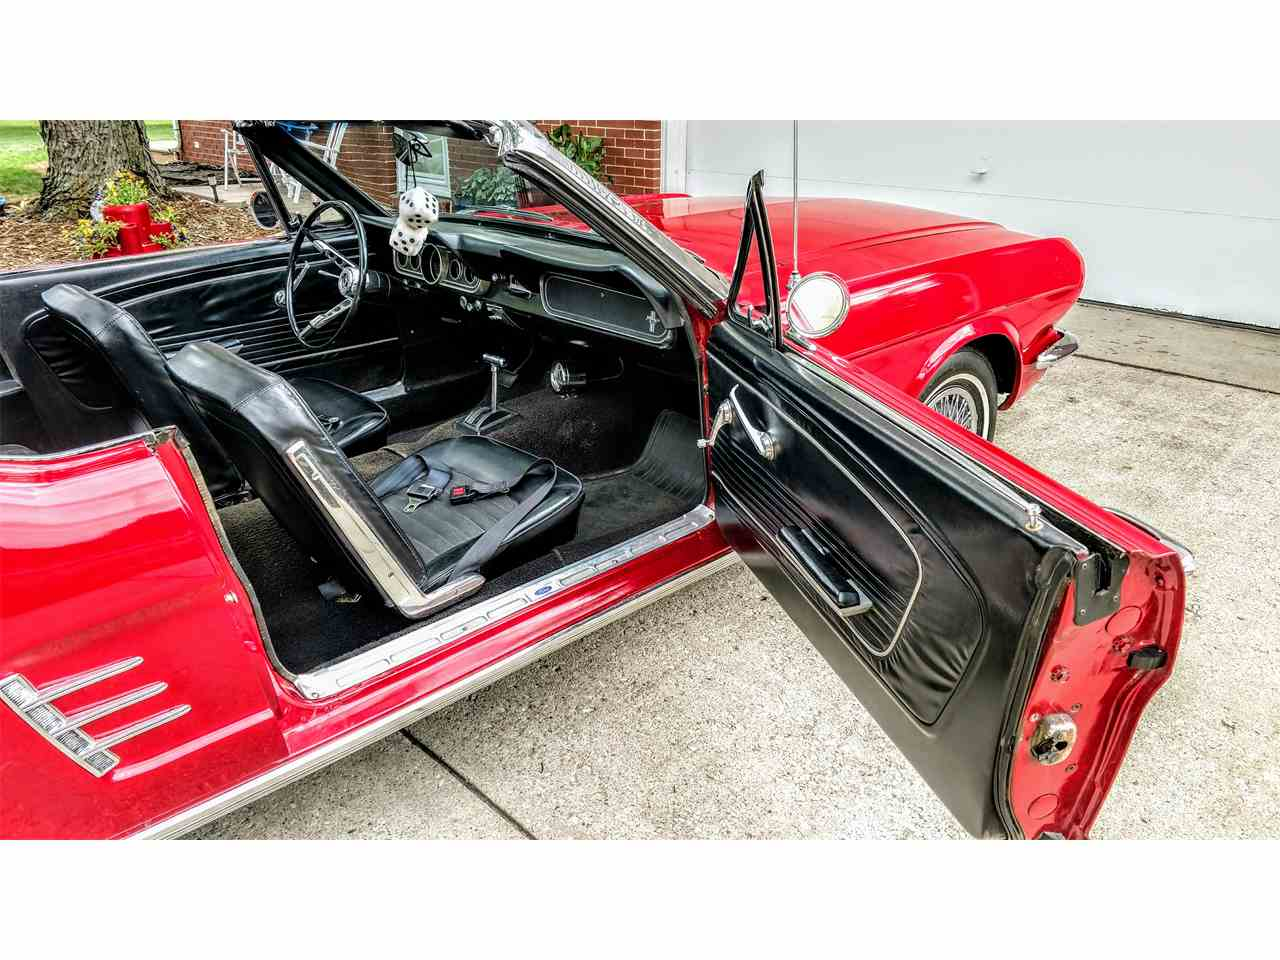 Large Picture of Classic '66 Mustang located in Illinois - $20,000.00 Offered by a Private Seller - LFP4